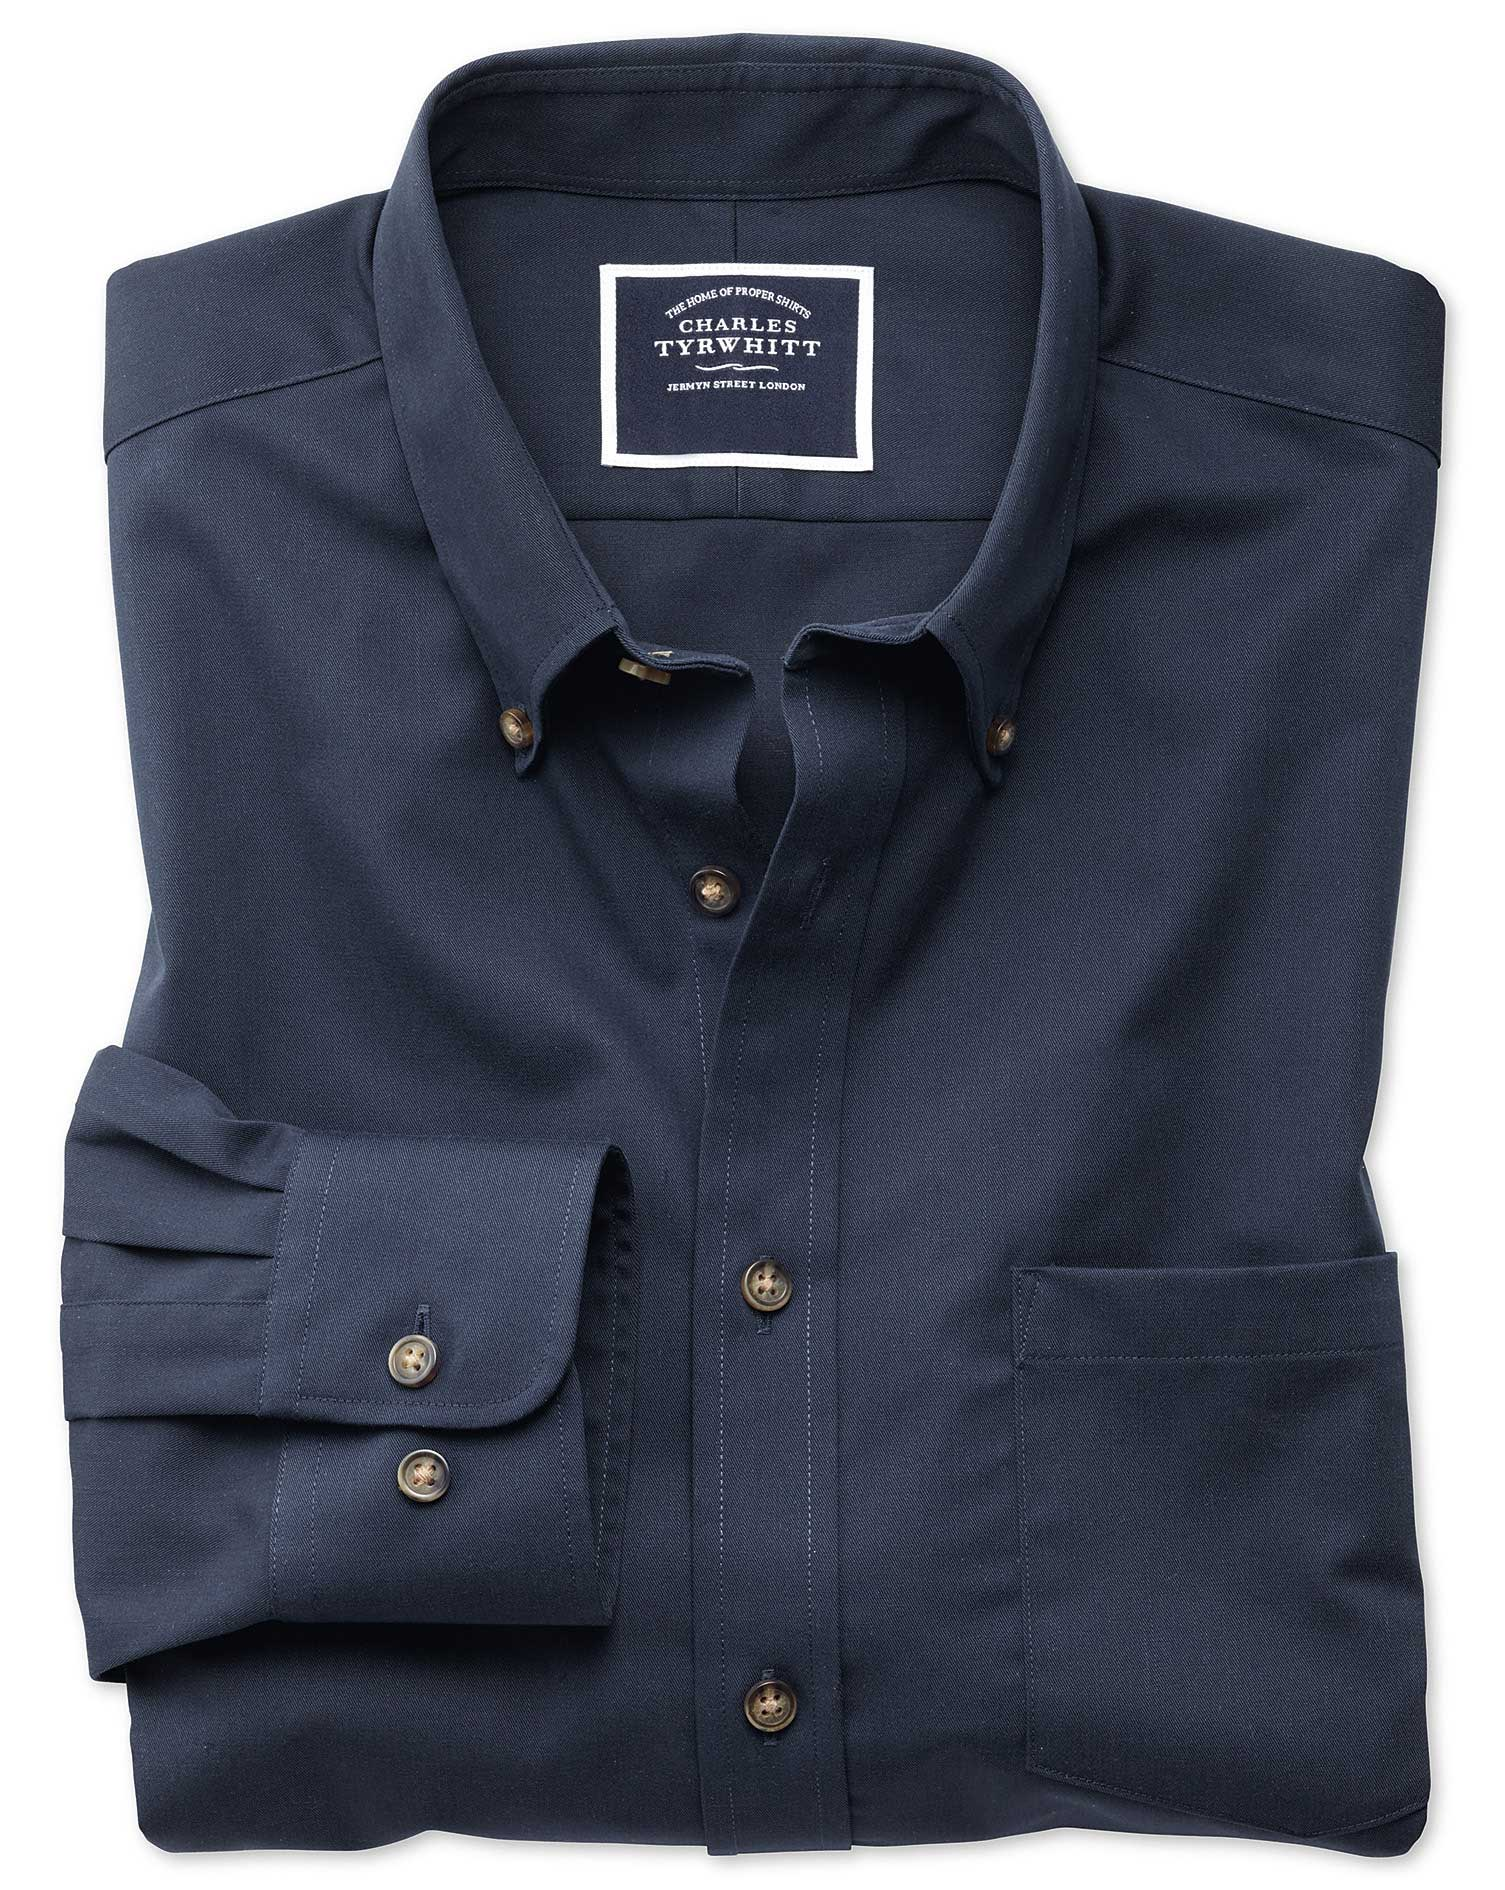 Extra Slim Fit Button-Down Non-Iron Twill Navy Cotton Shirt Single Cuff Size XXL by Charles Tyrwhitt